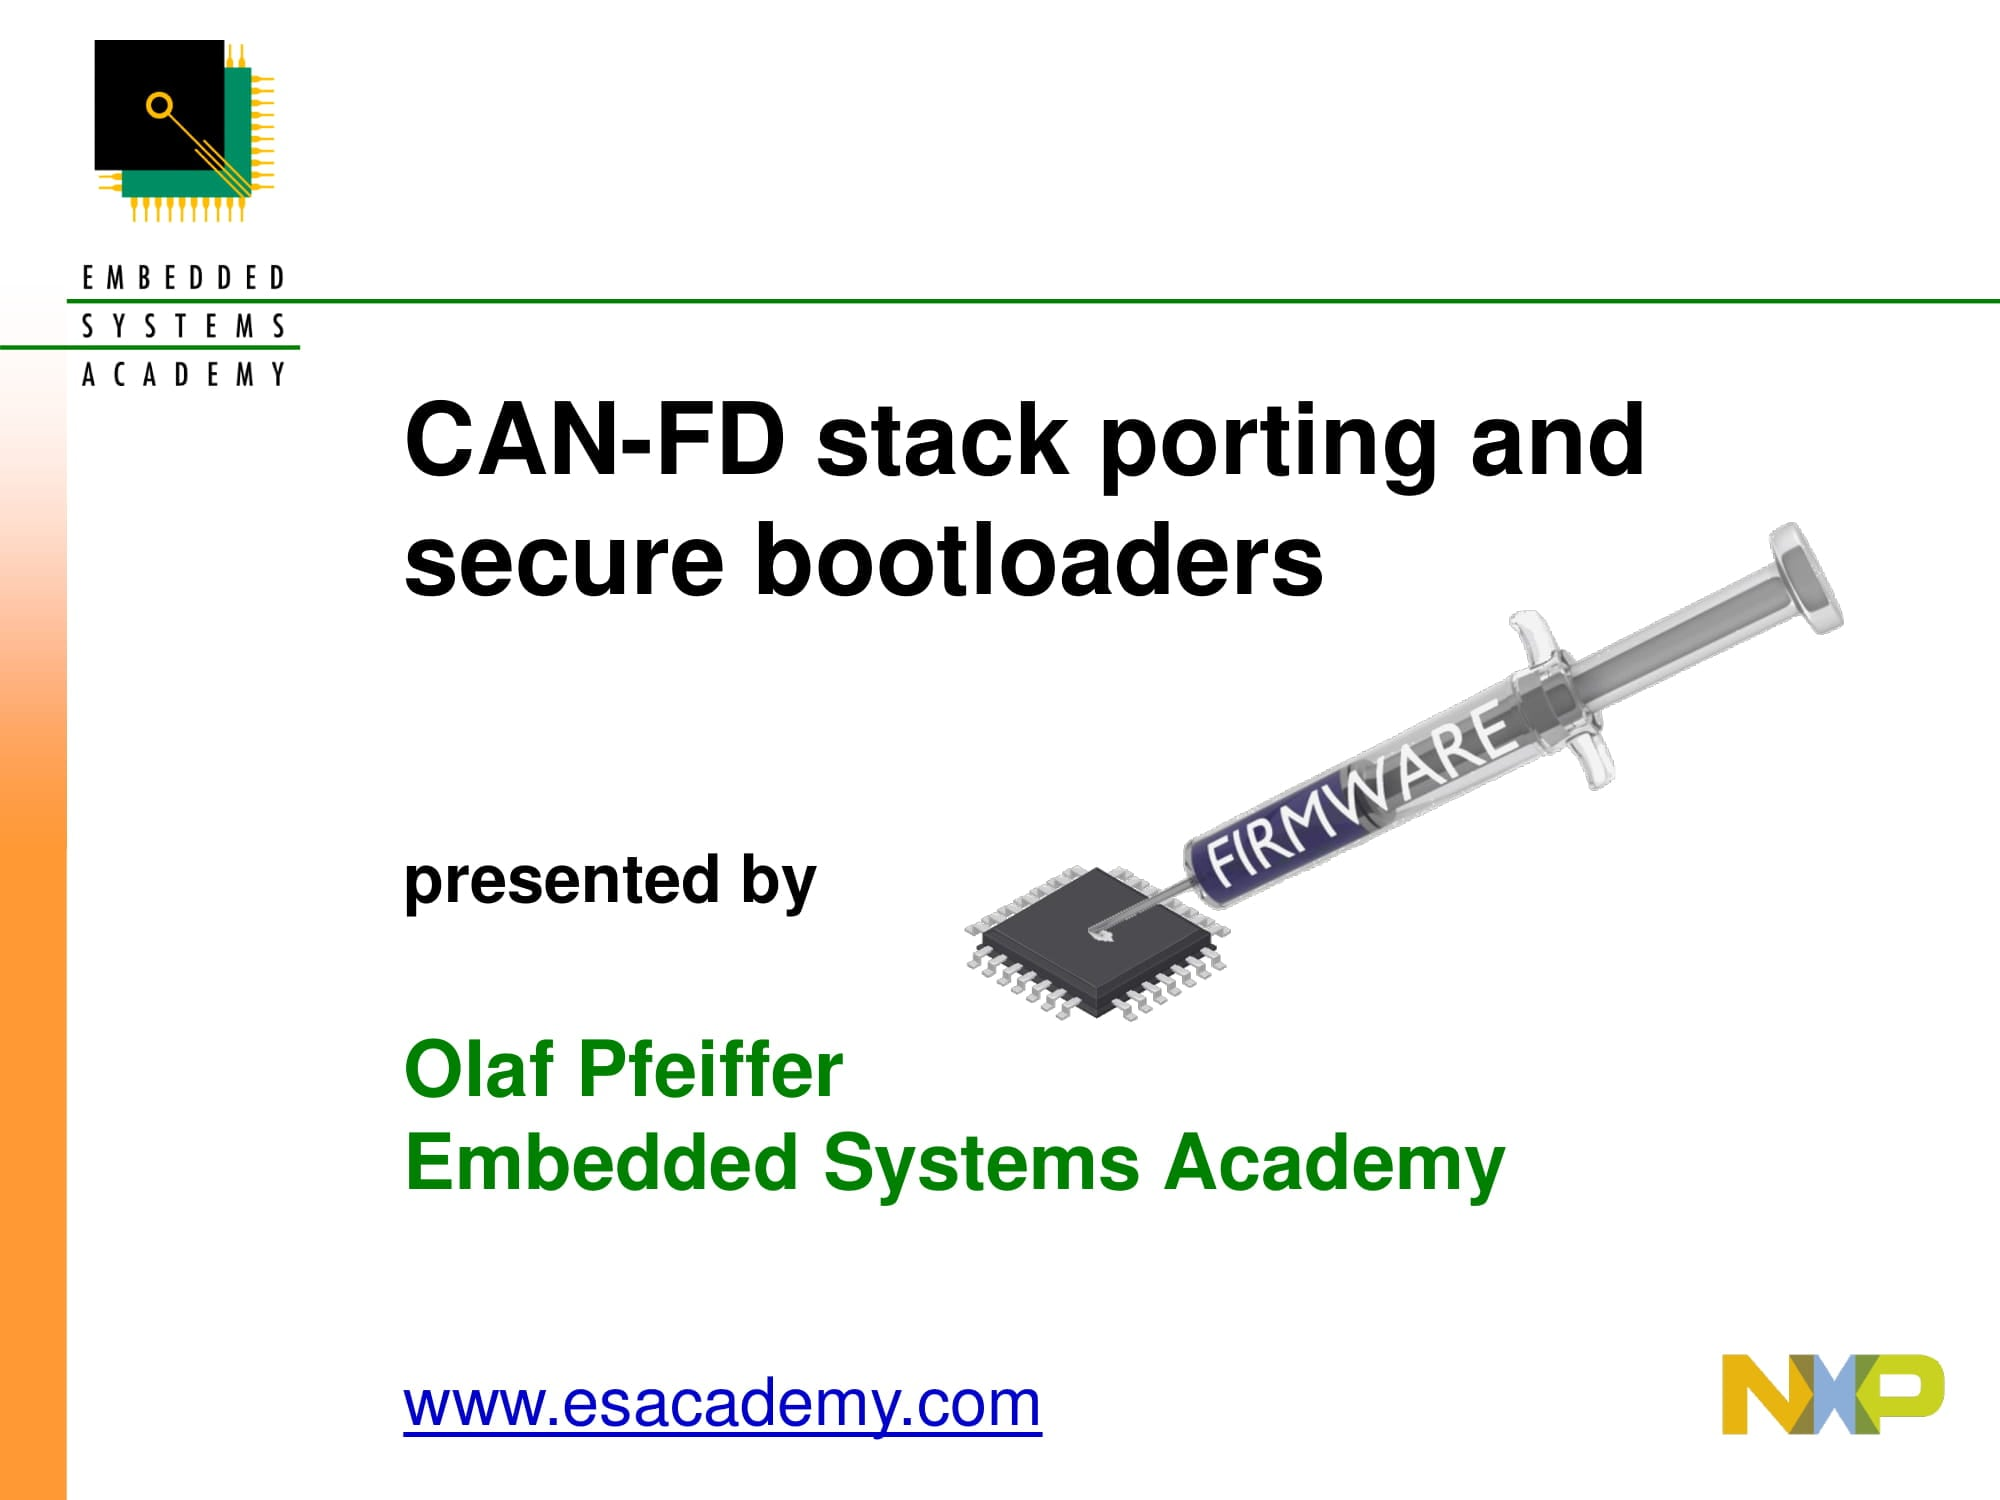 CAN-FD stack porting and secure bootloaders